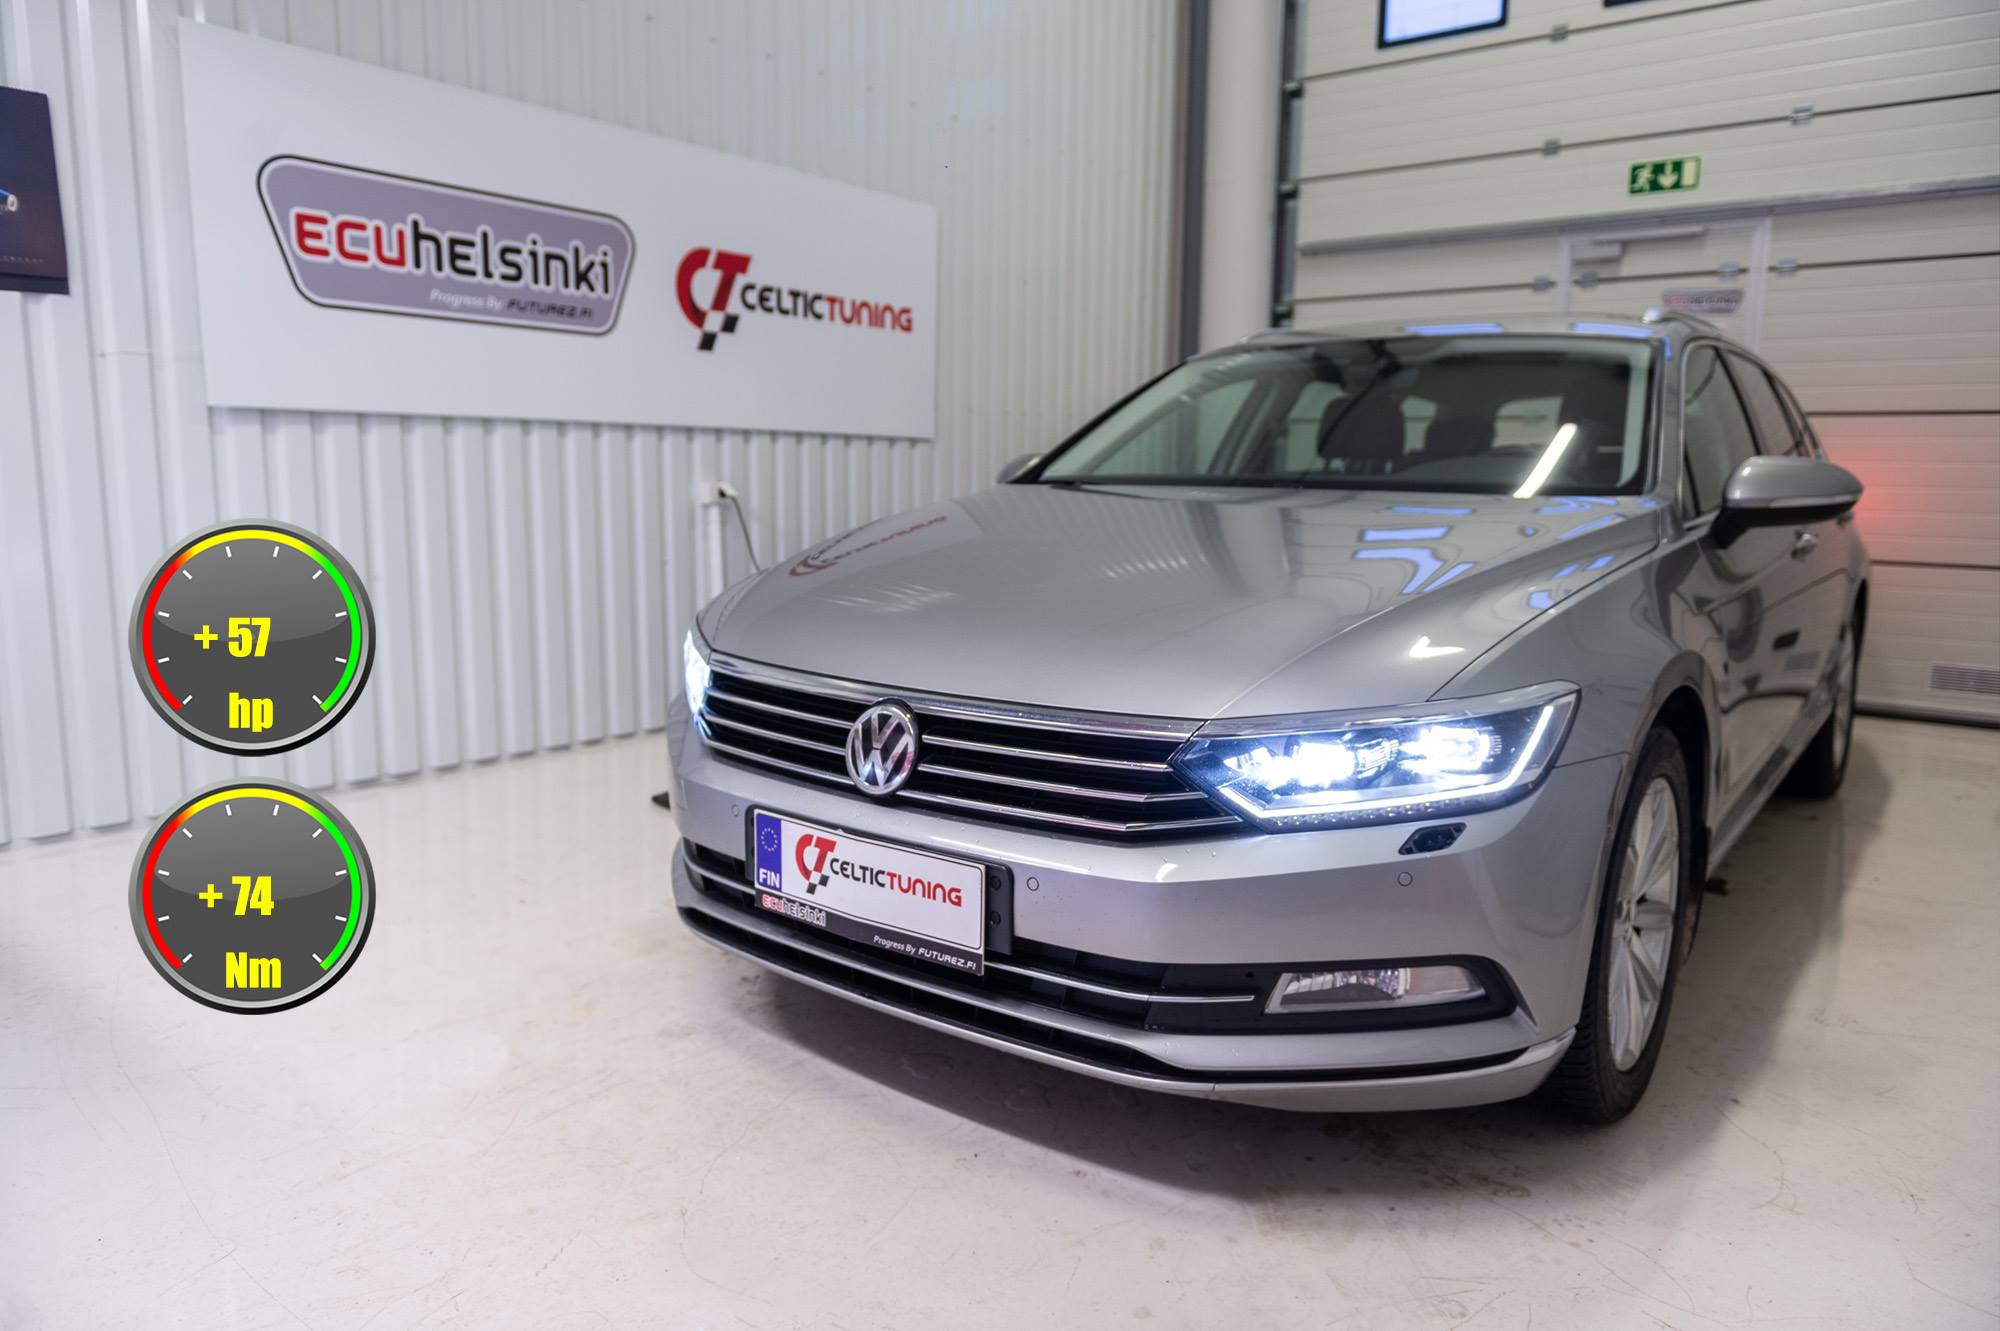 VW Passat lastutus celtic tuning